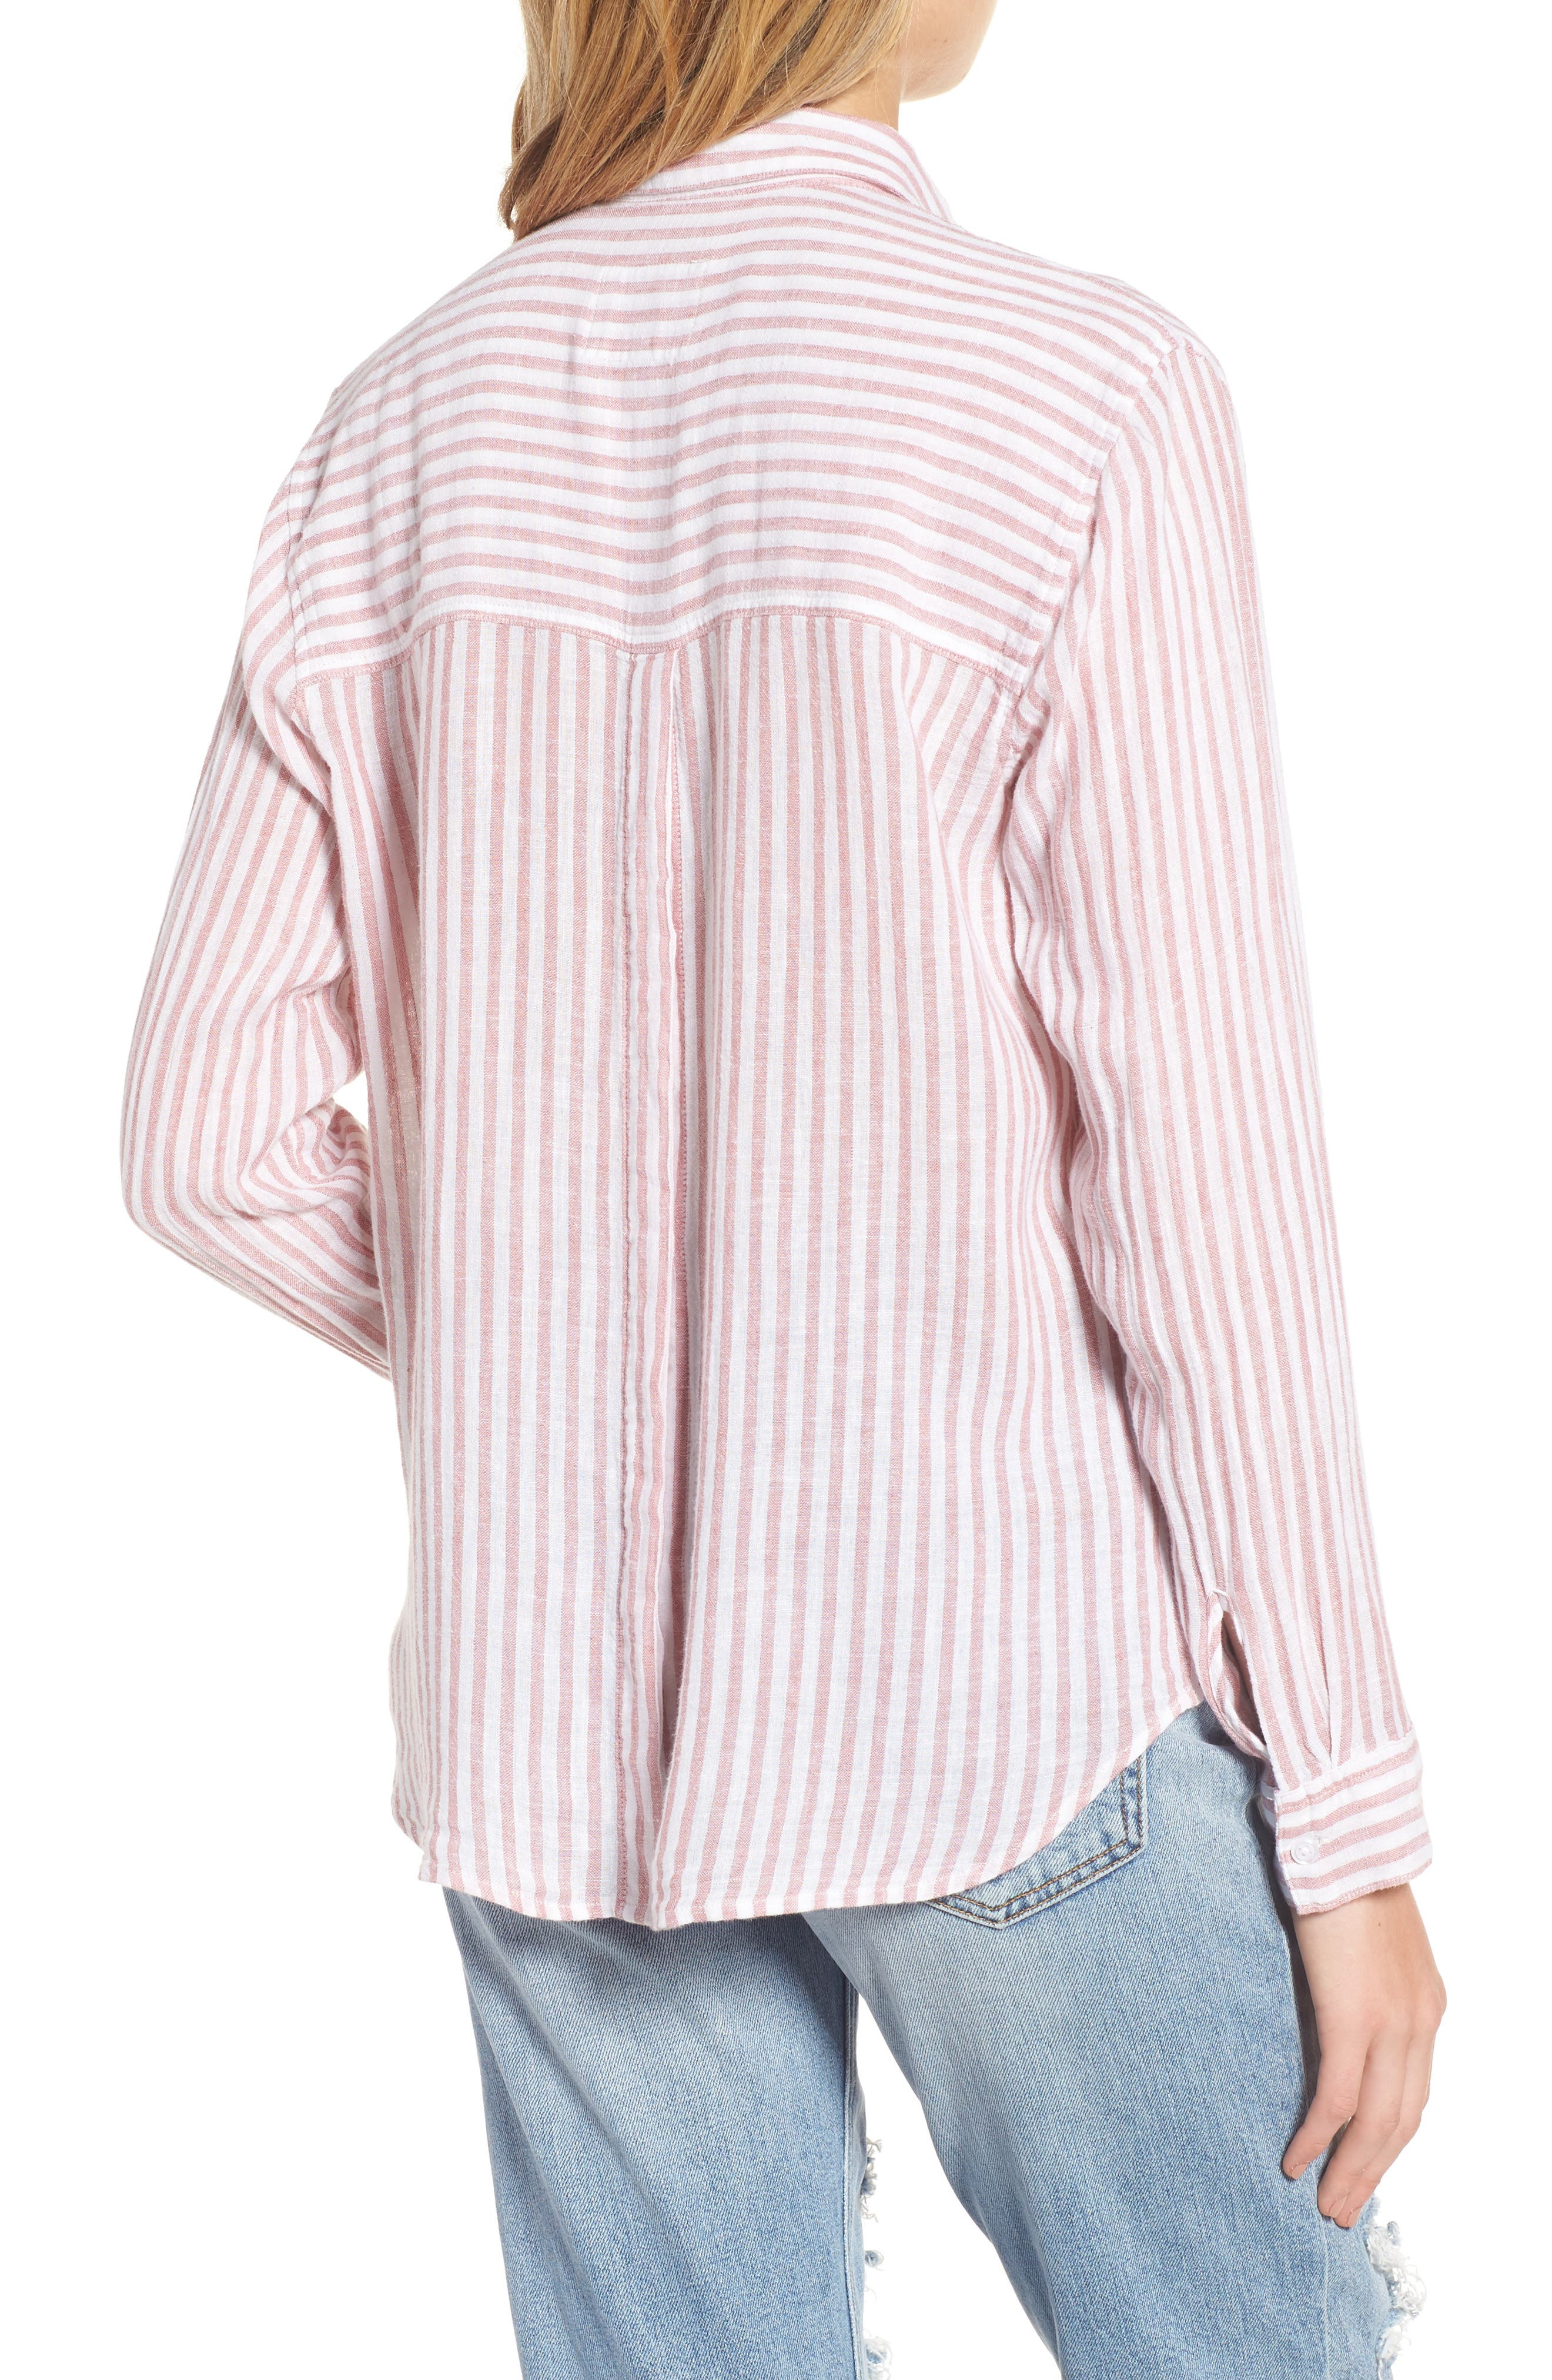 Sydney Stripe Linen Blend Shirt,                             Alternate thumbnail 2, color,                             Florence Stripe